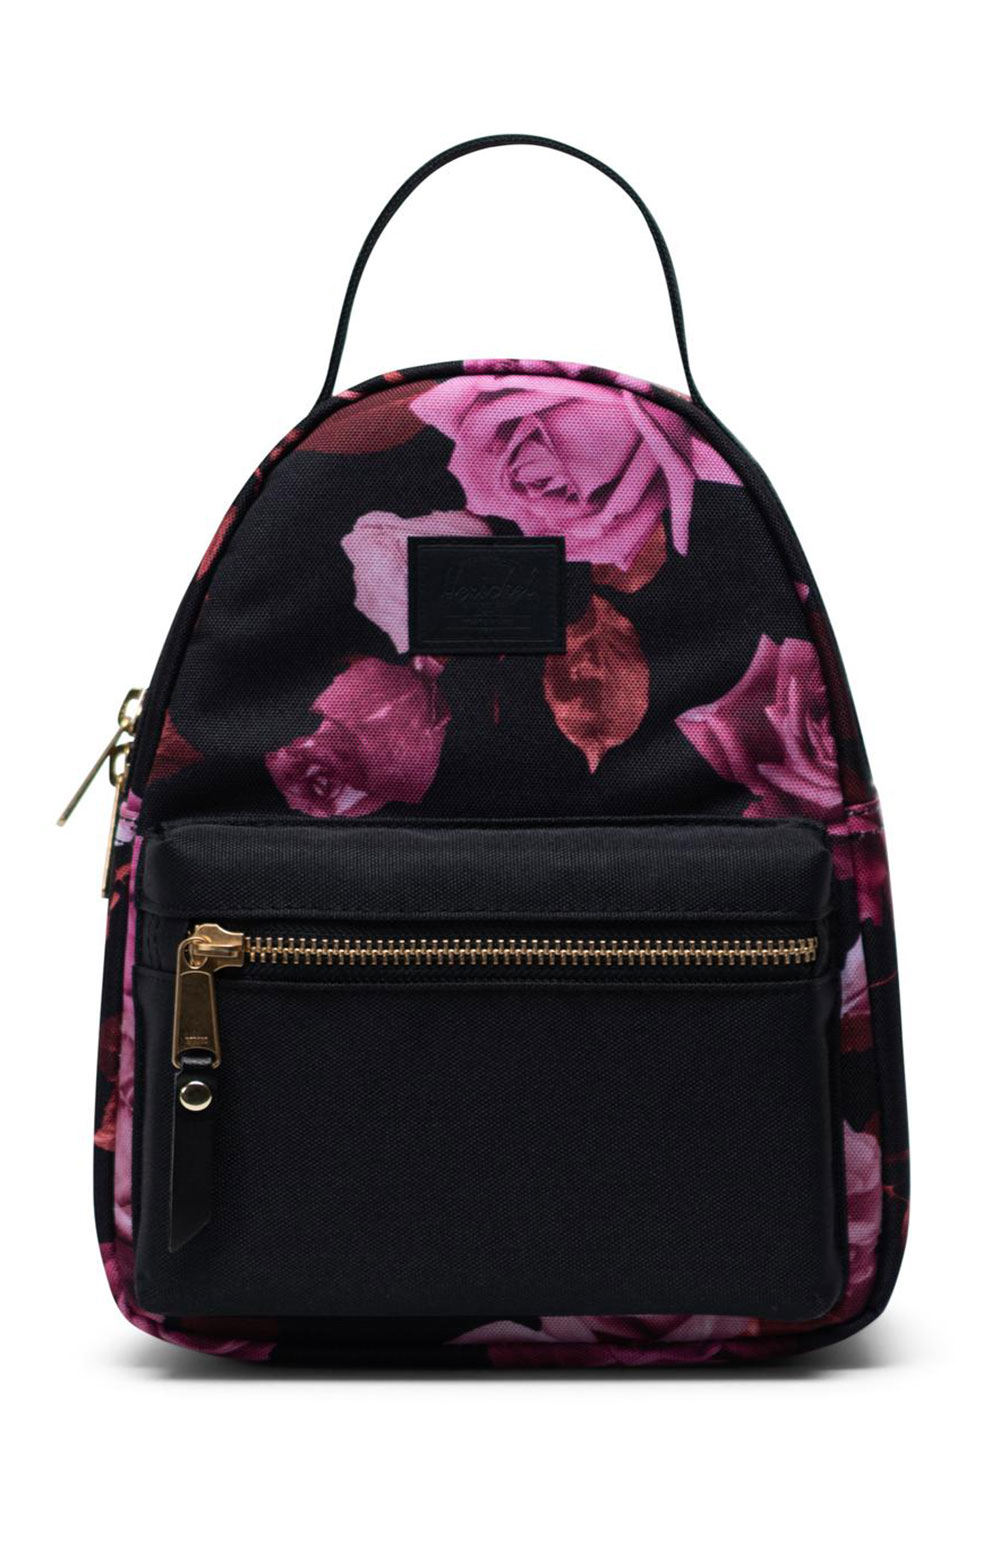 Nova Mini Backpack - Roses Black